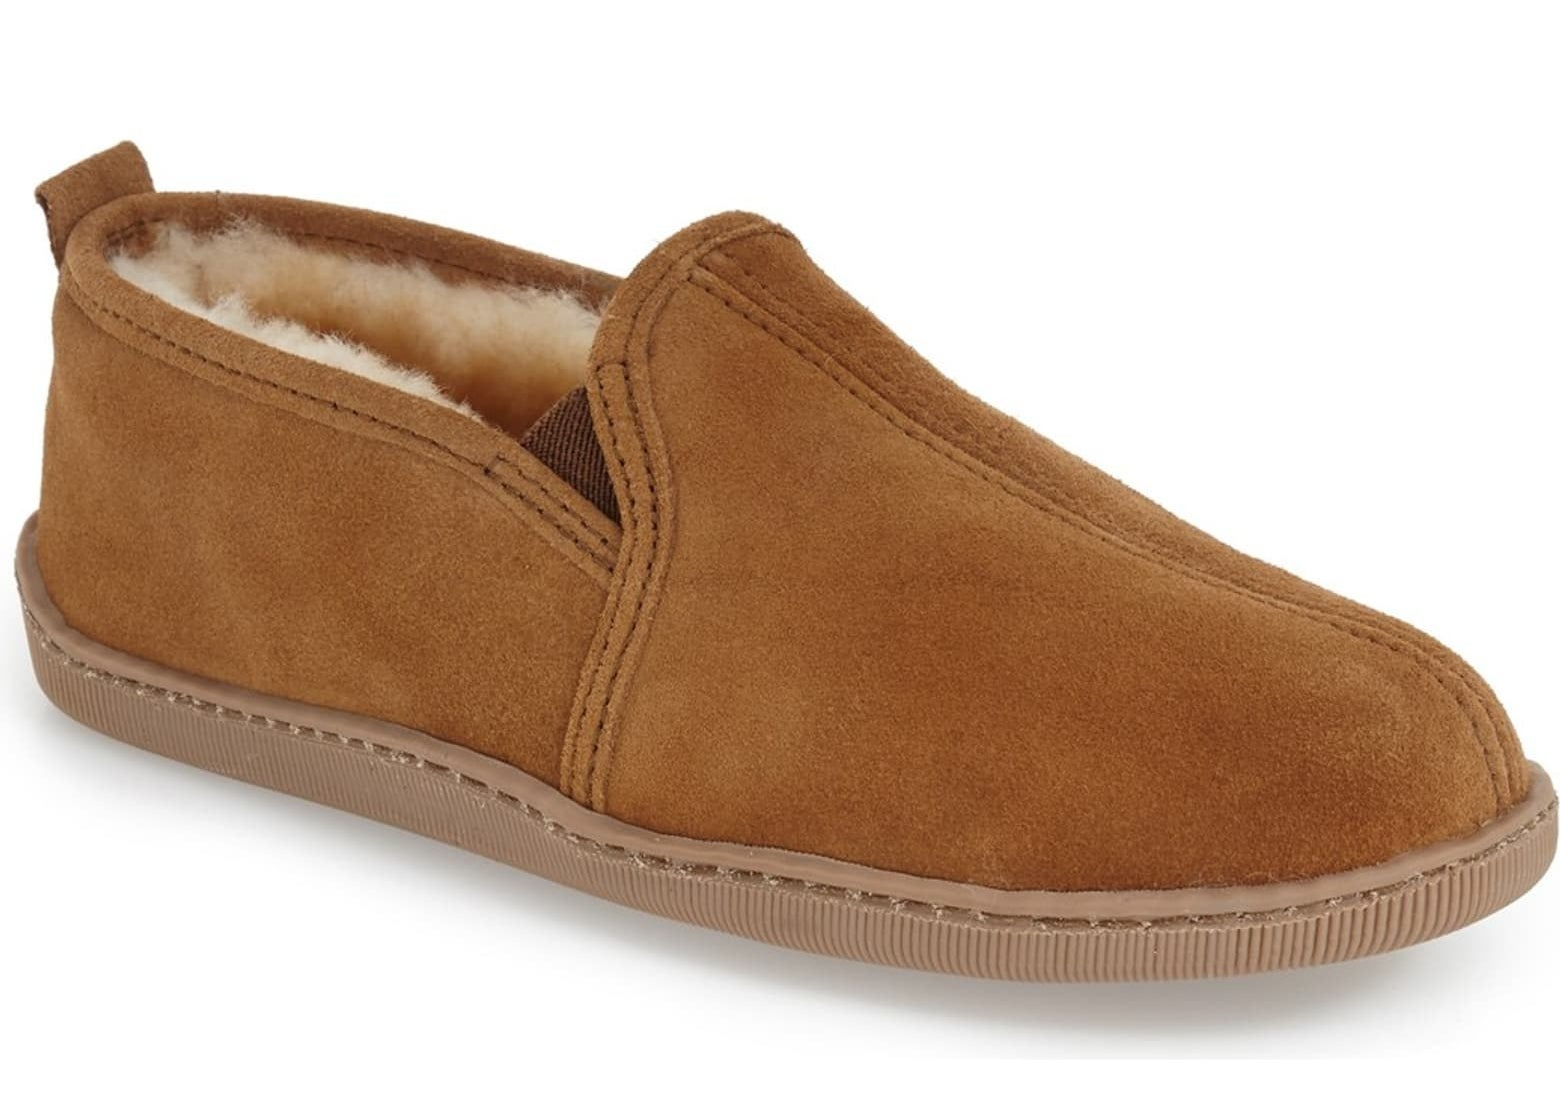 Slip-on slippers with brown suede upper